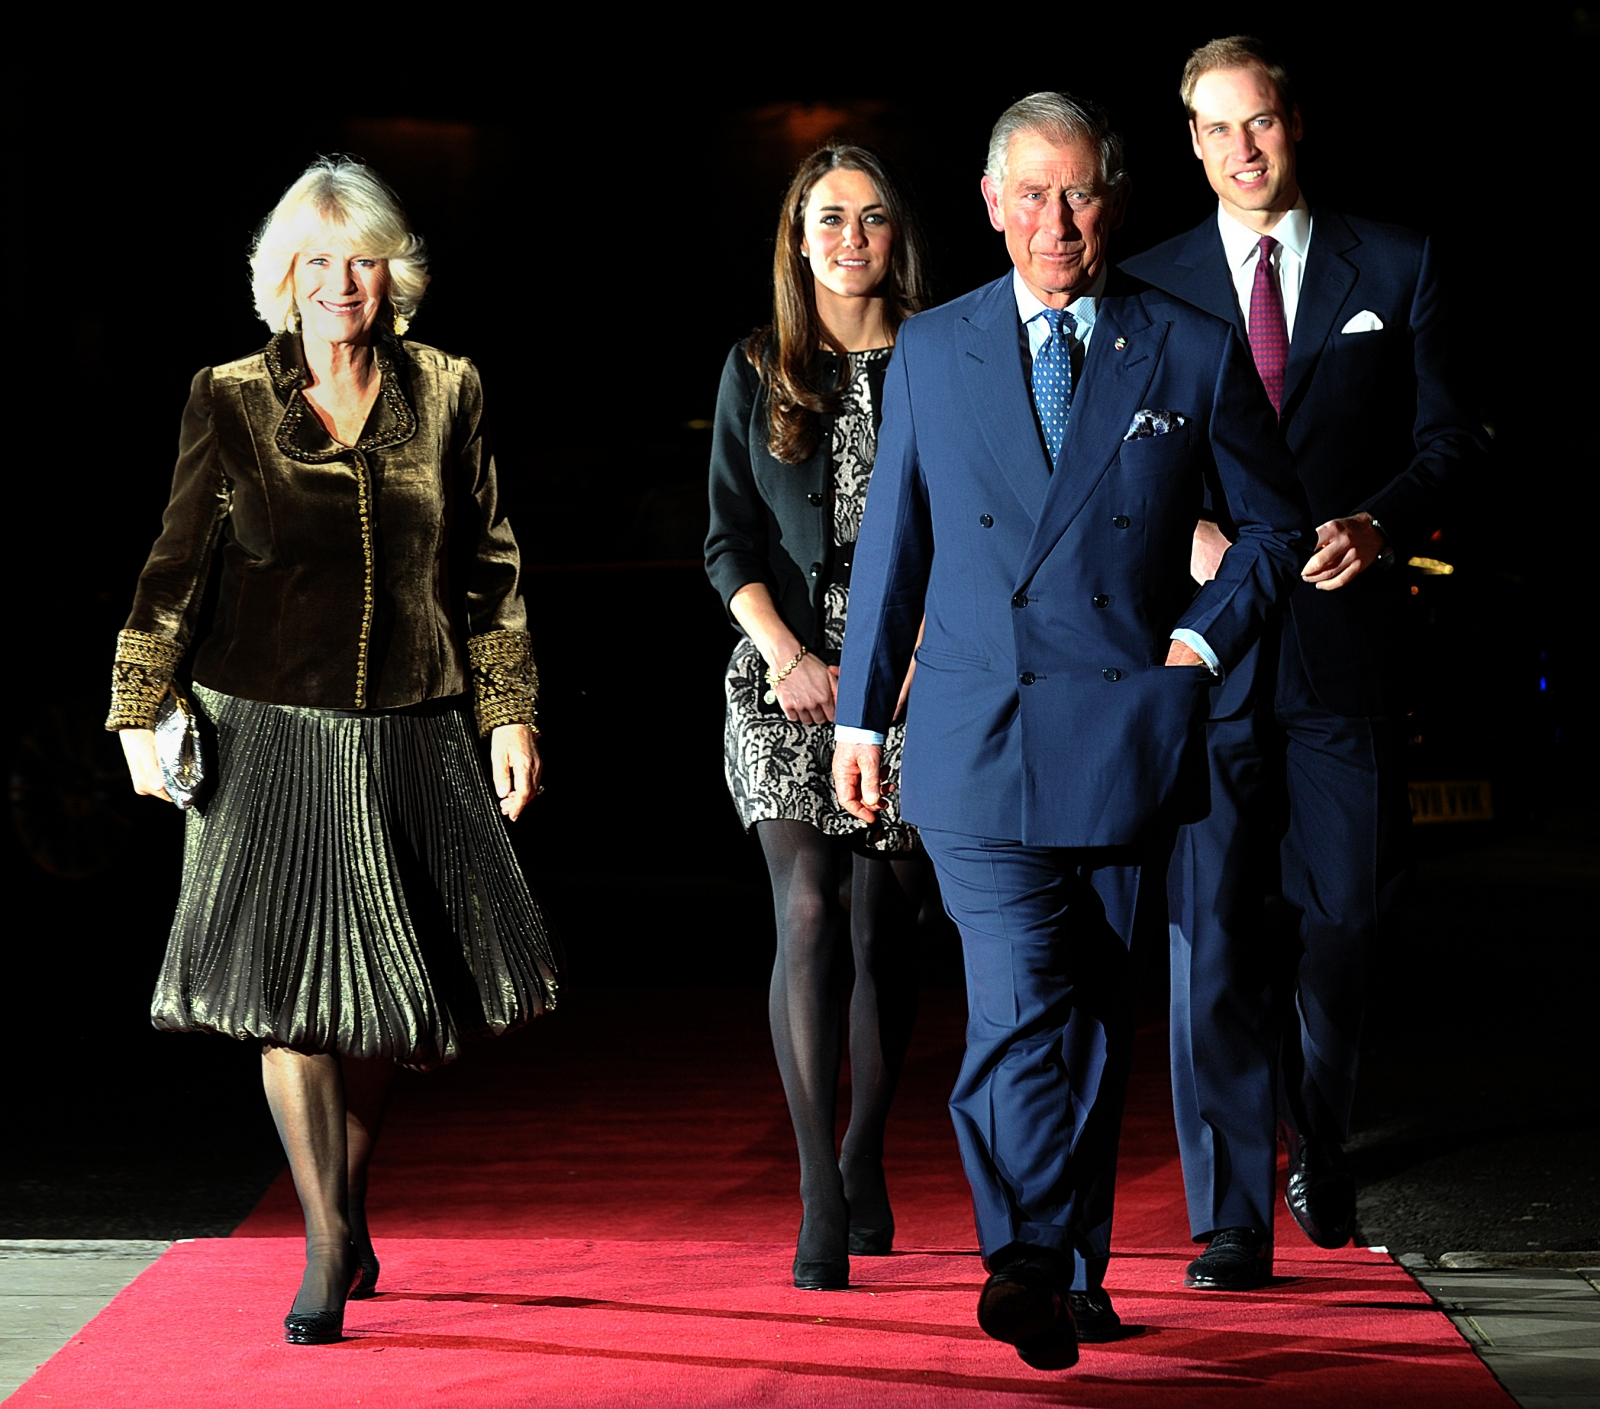 Prince Charles, Kate Middleton, Prince William andCamilla